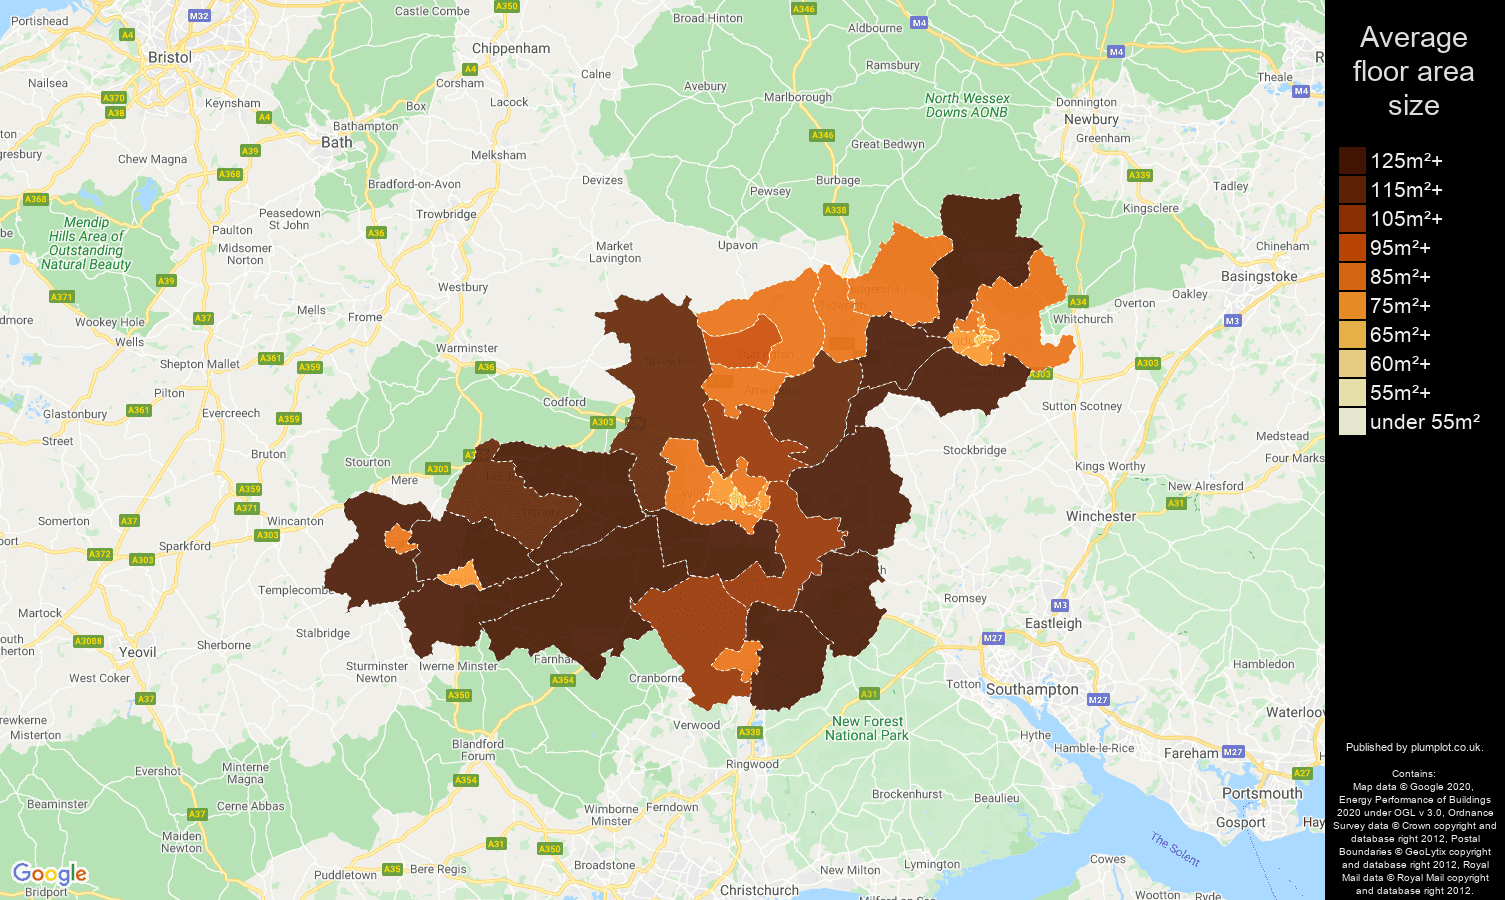 Salisbury map of average floor area size of properties